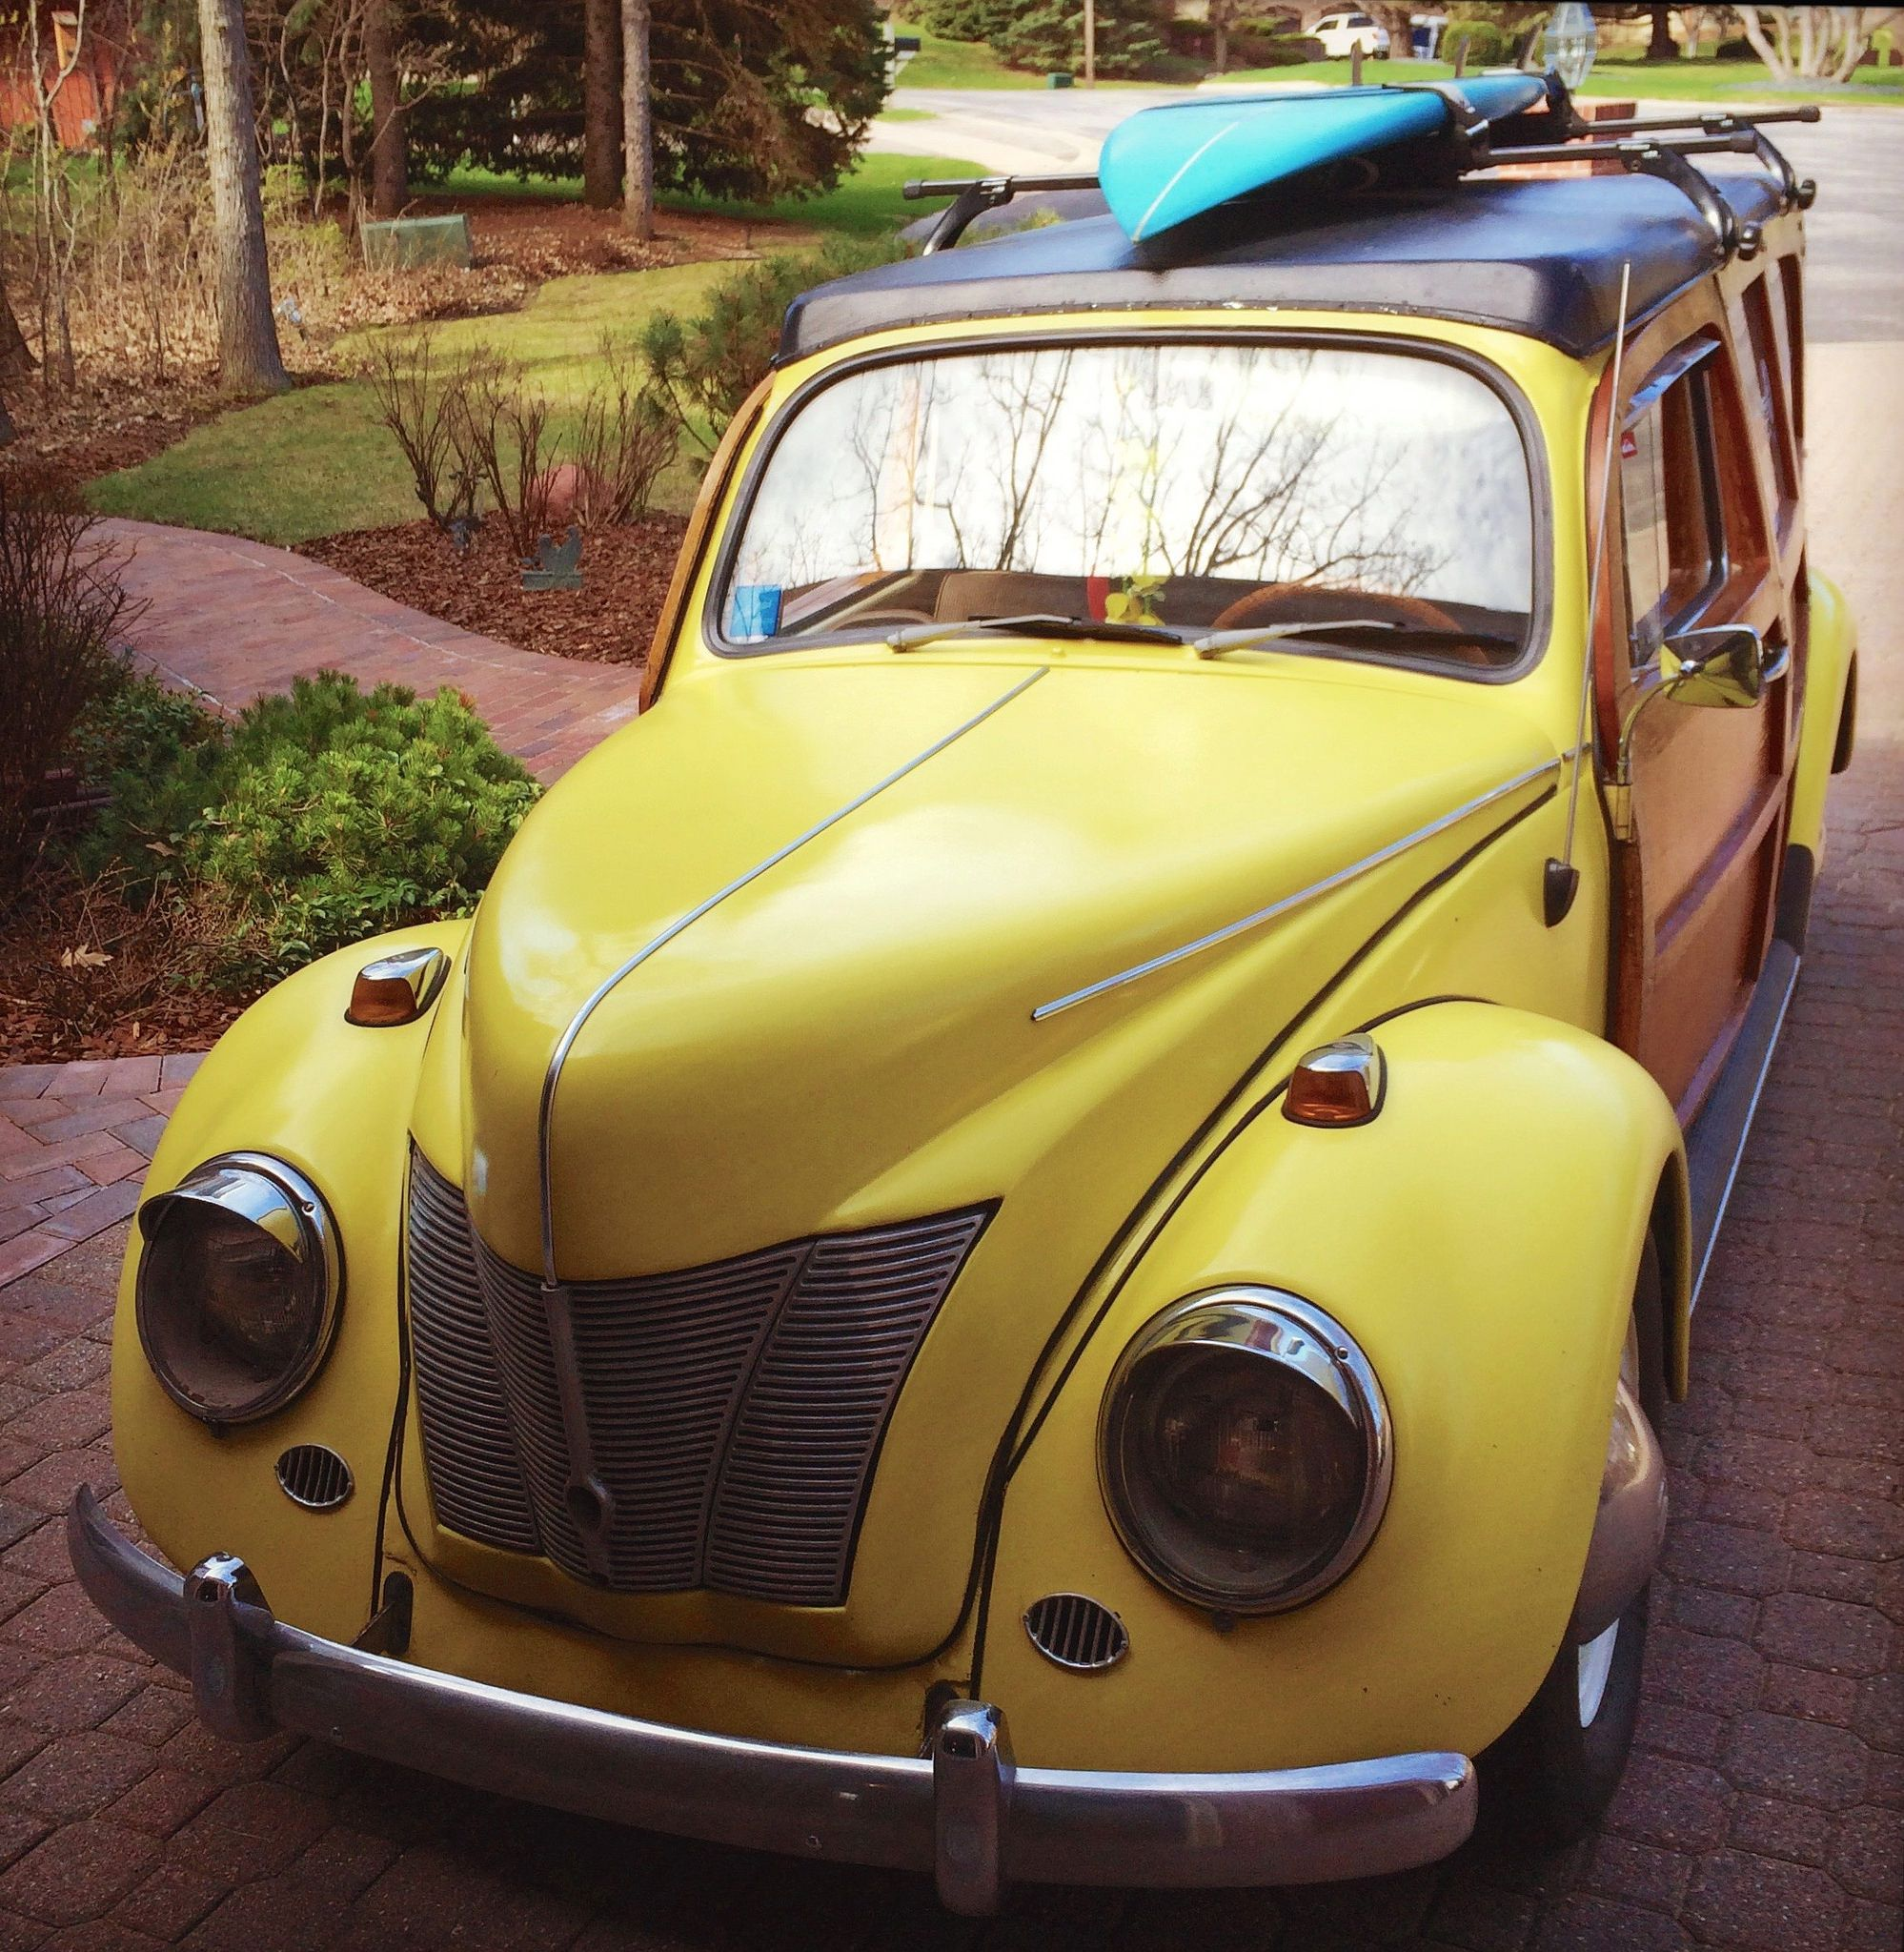 1965 VW Beetle Woodie - for sale | Vw beetles, Beetles and Vw